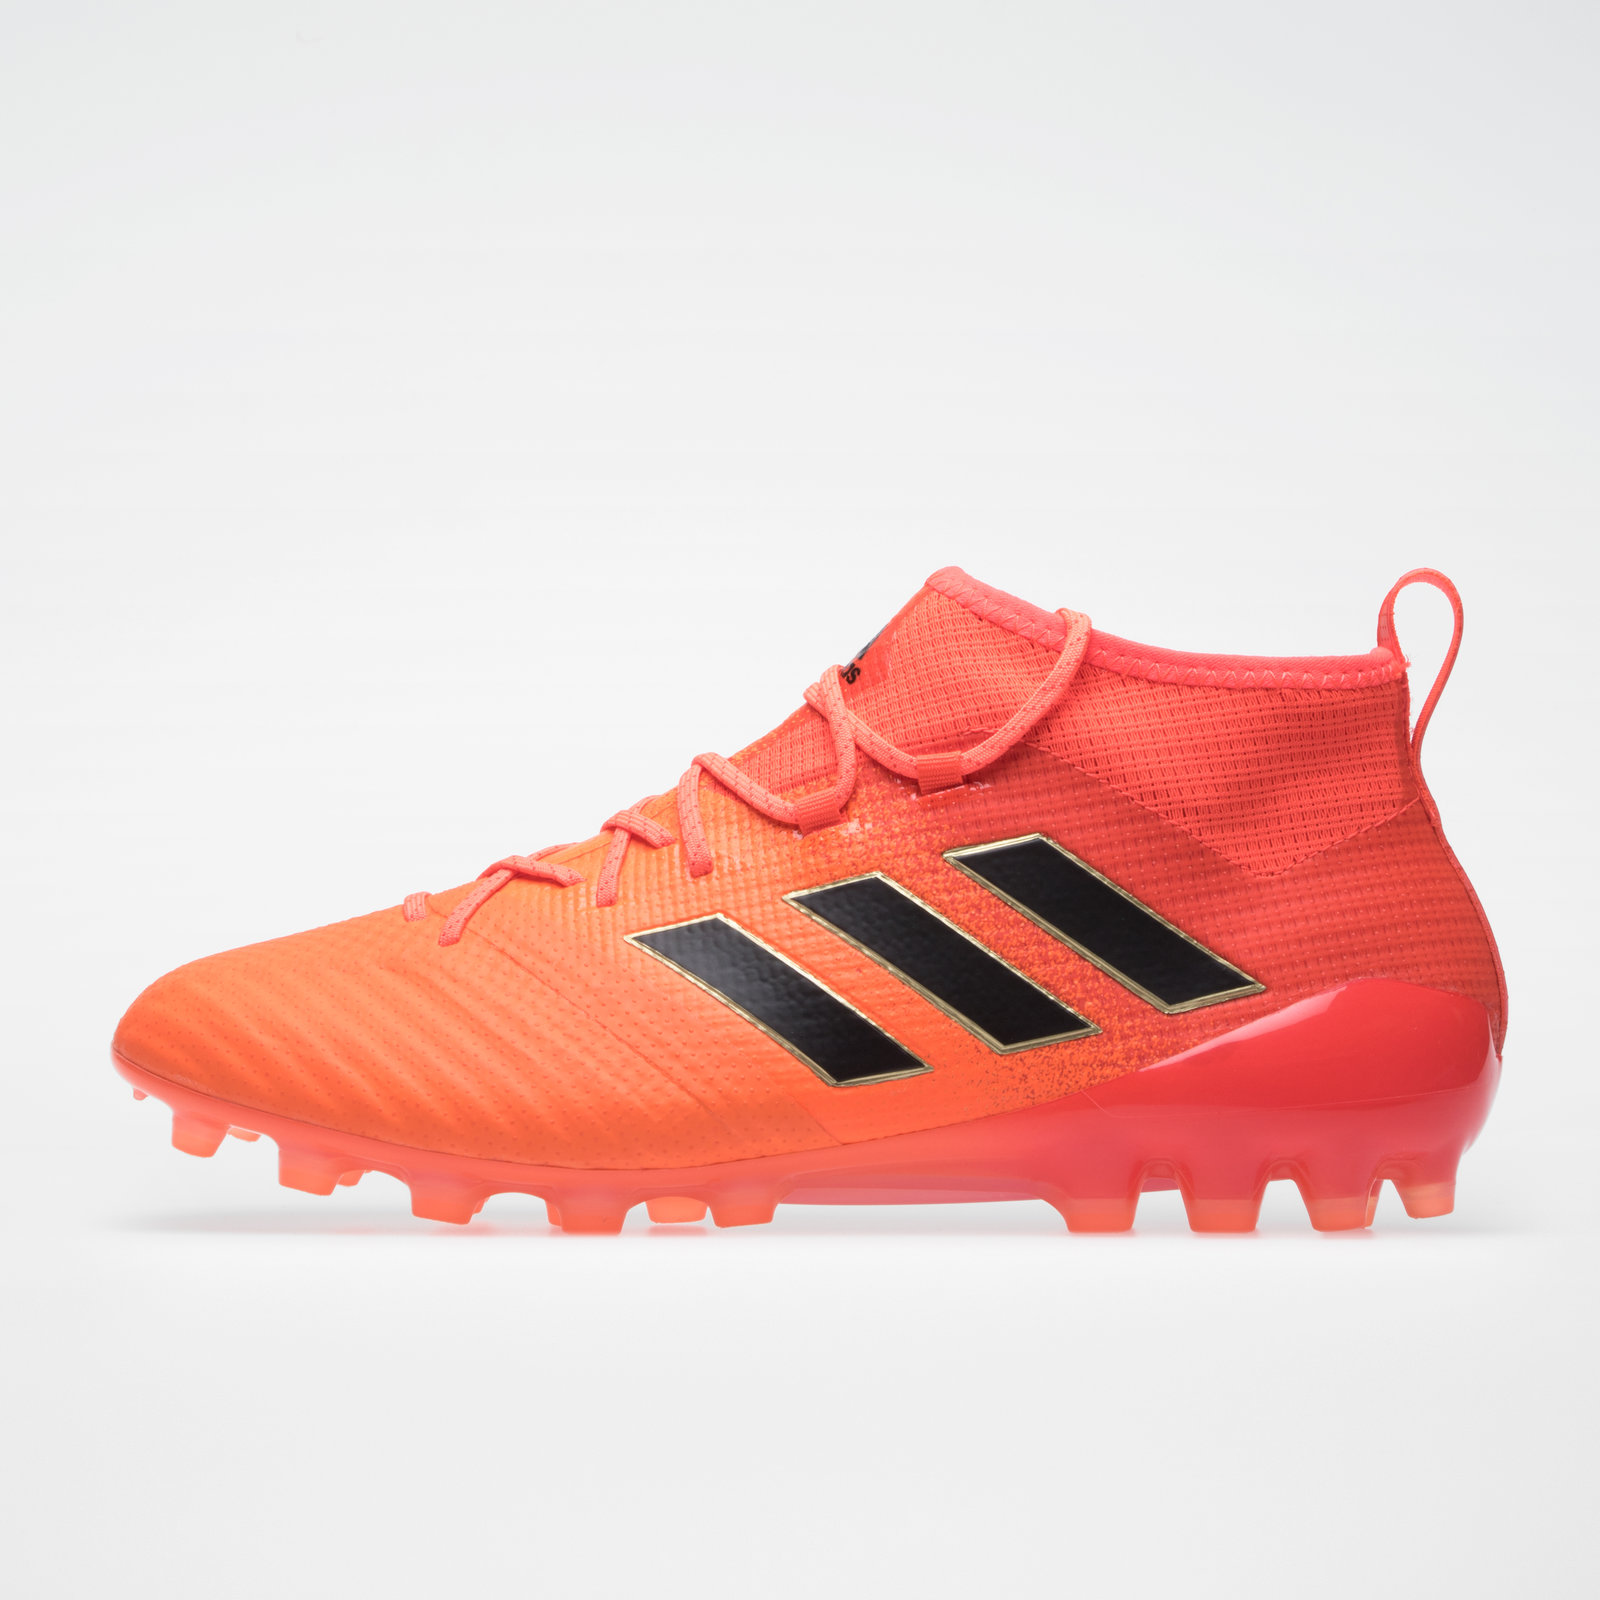 Image of Ace 17.1 AG Football Boots